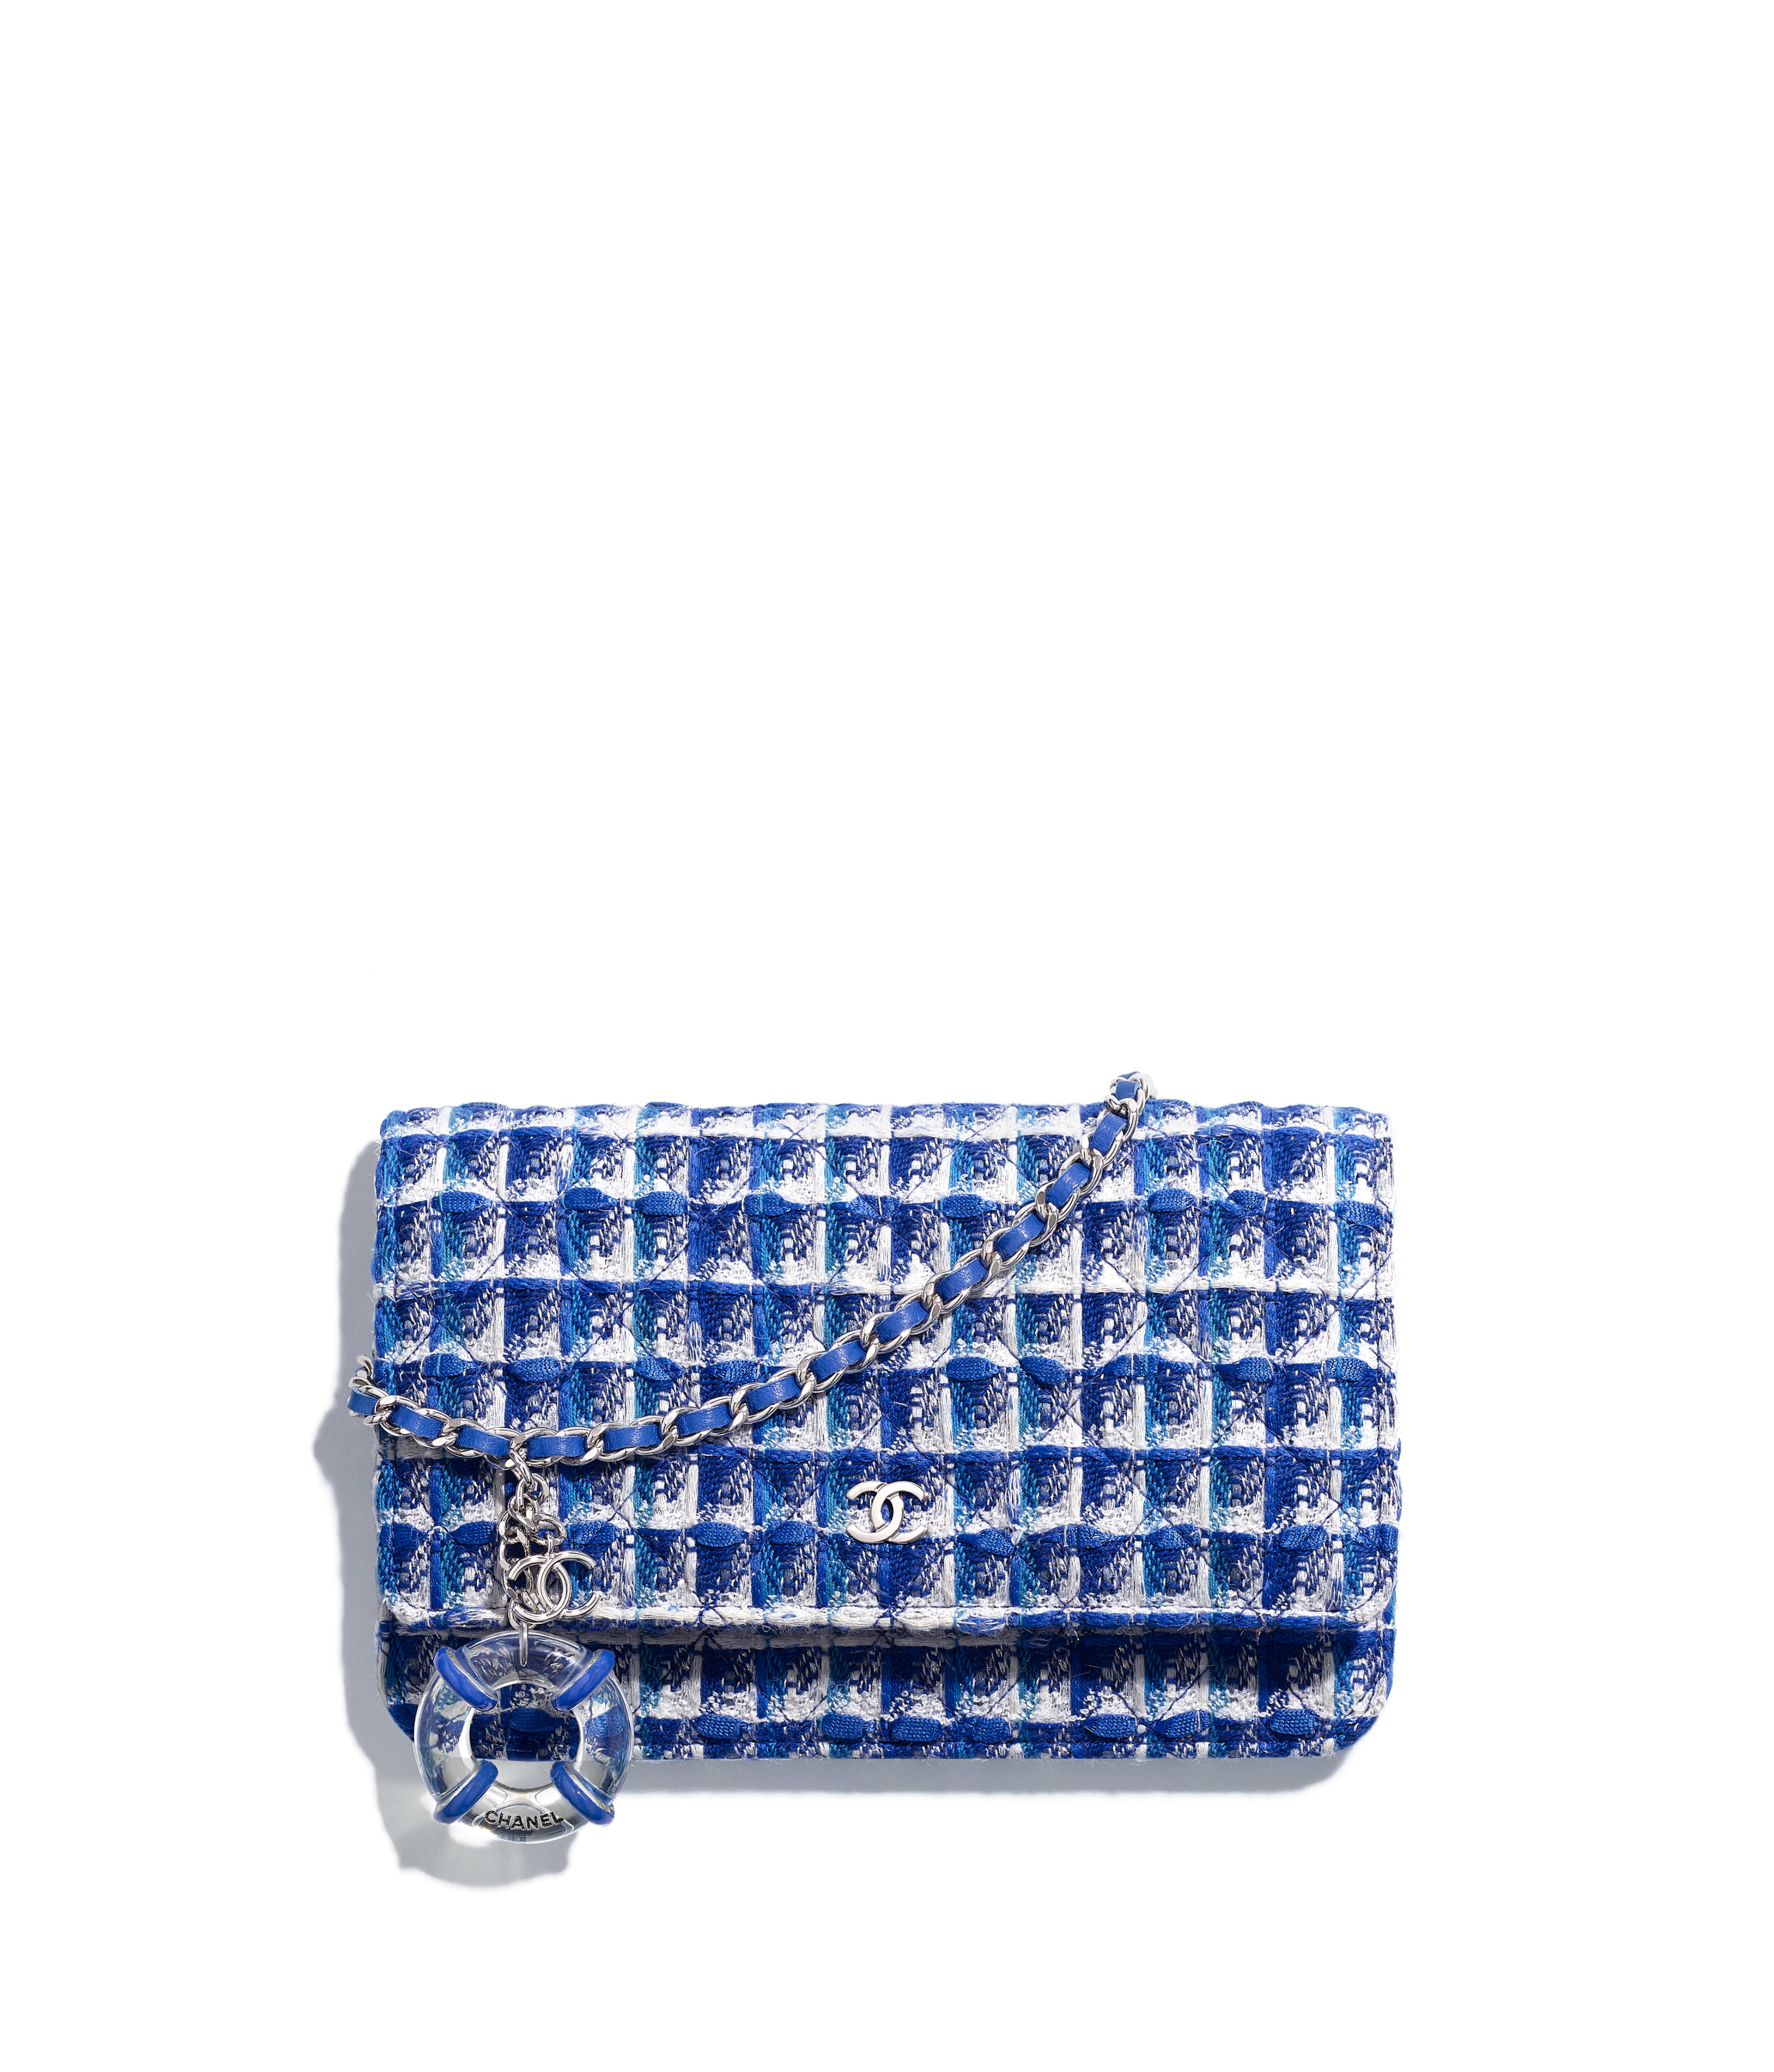 930a7264faaf Classic Wallet on Chain Tweed, Resin & Silver-Tone Metal, Blue, White &  Silver Ref. A33814Y33439MF566